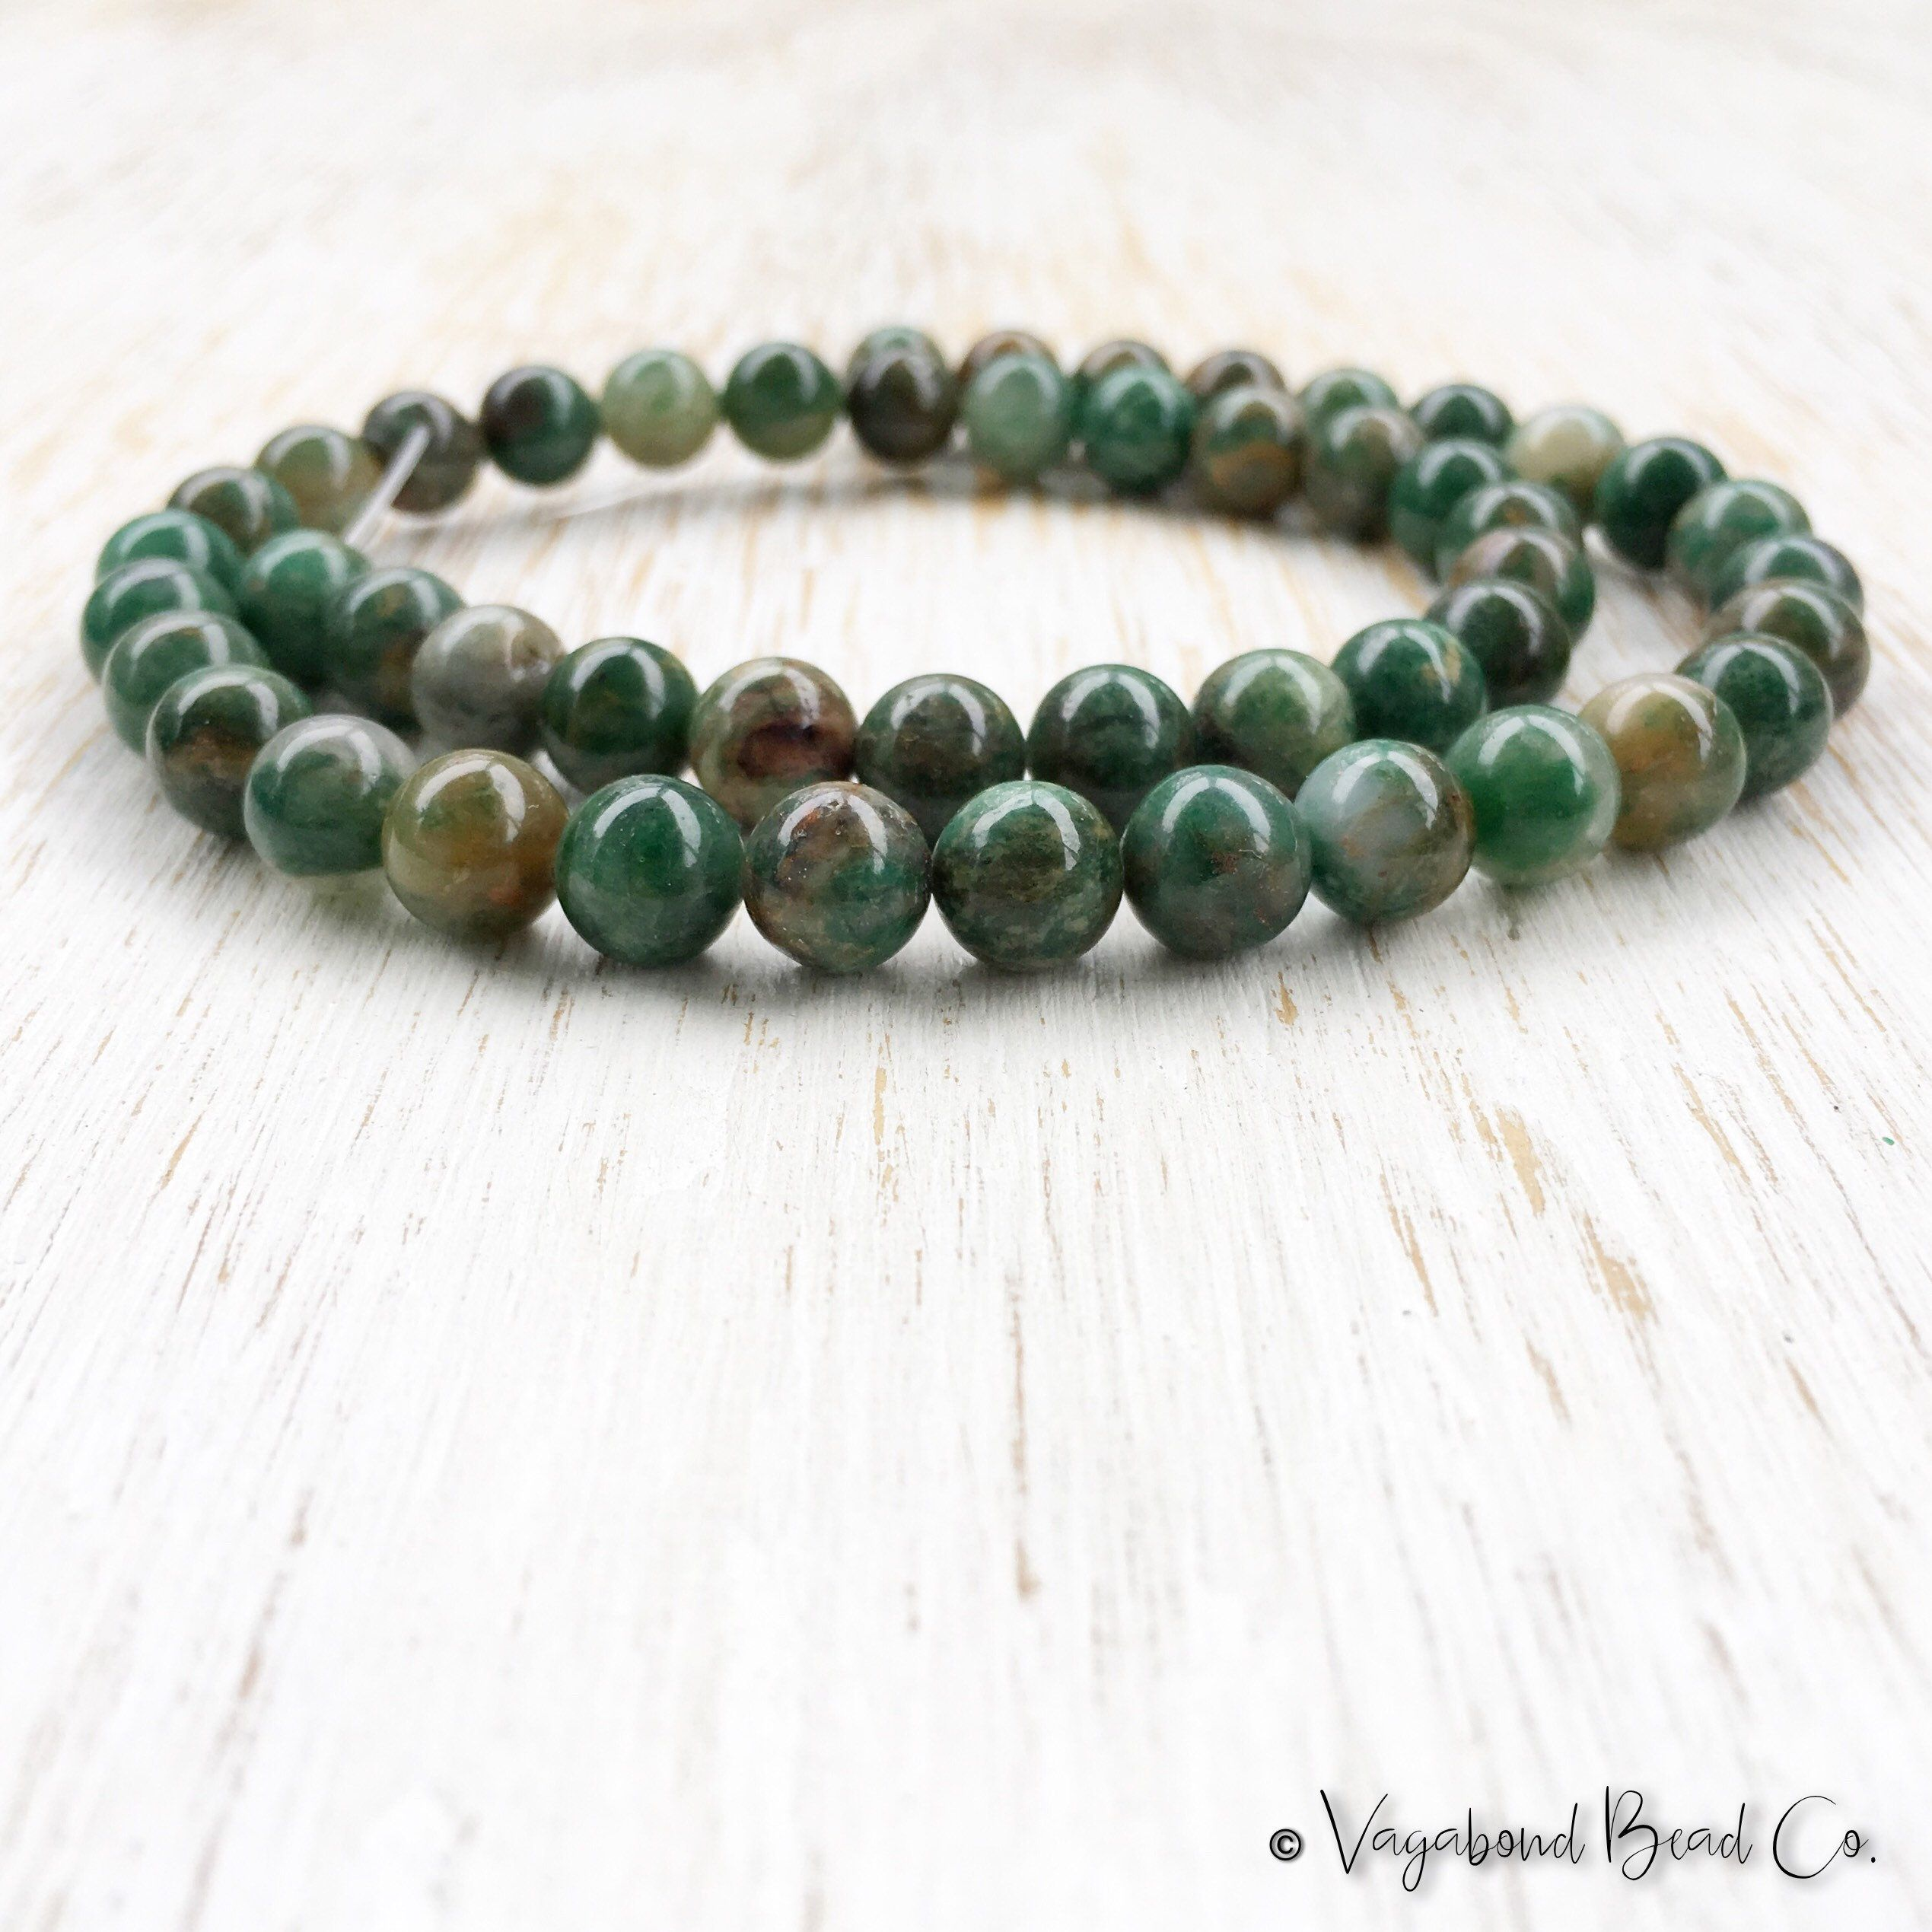 beads malachite etsy green mala mishkasamuel necklace jade aventurine products